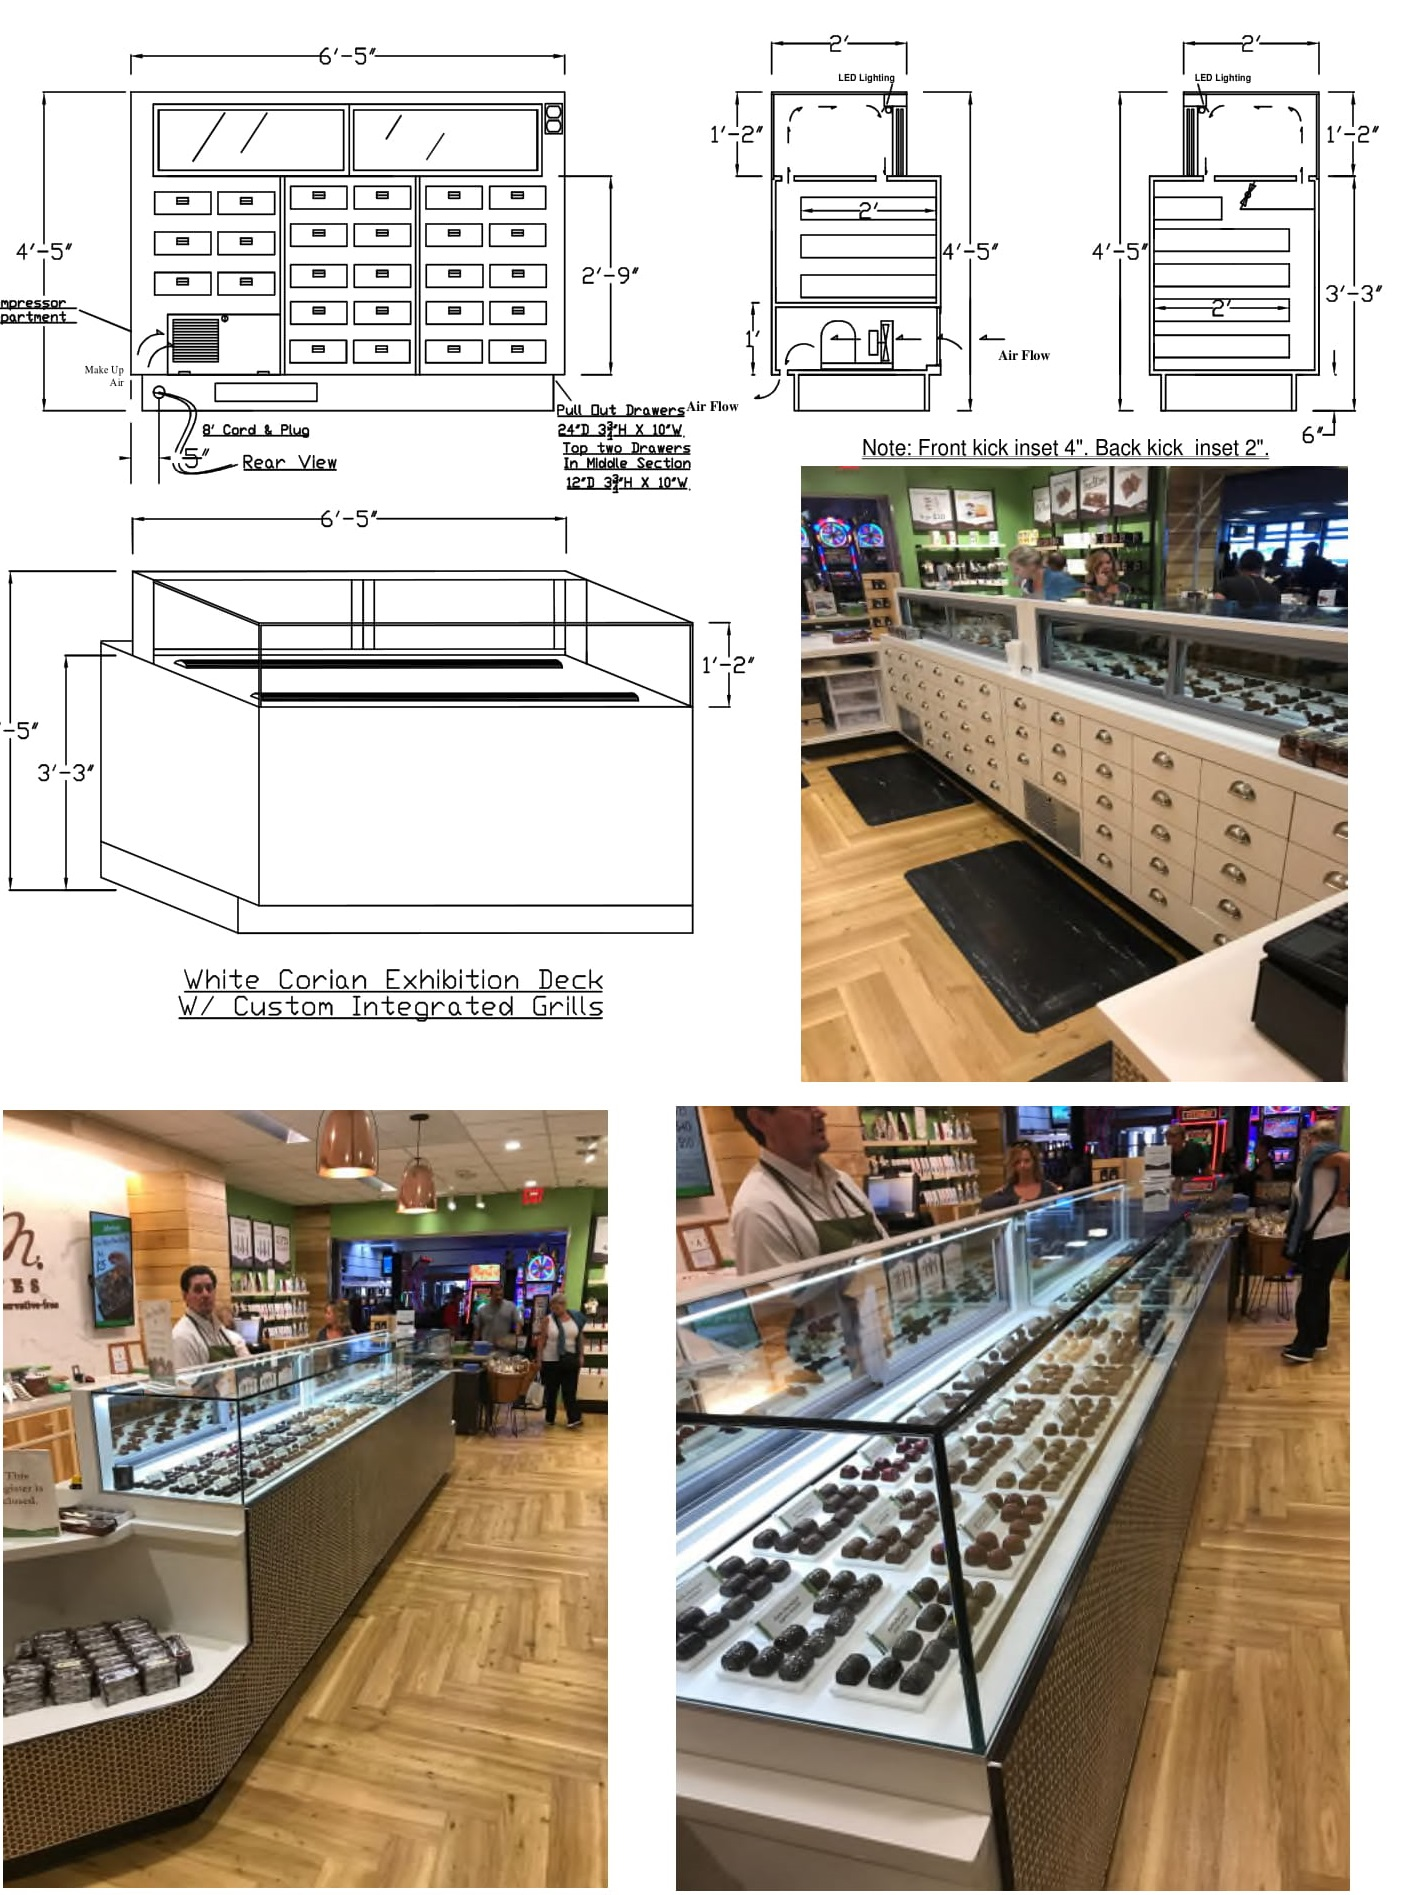 coldcore inc. helps with planning your bakery or candy store